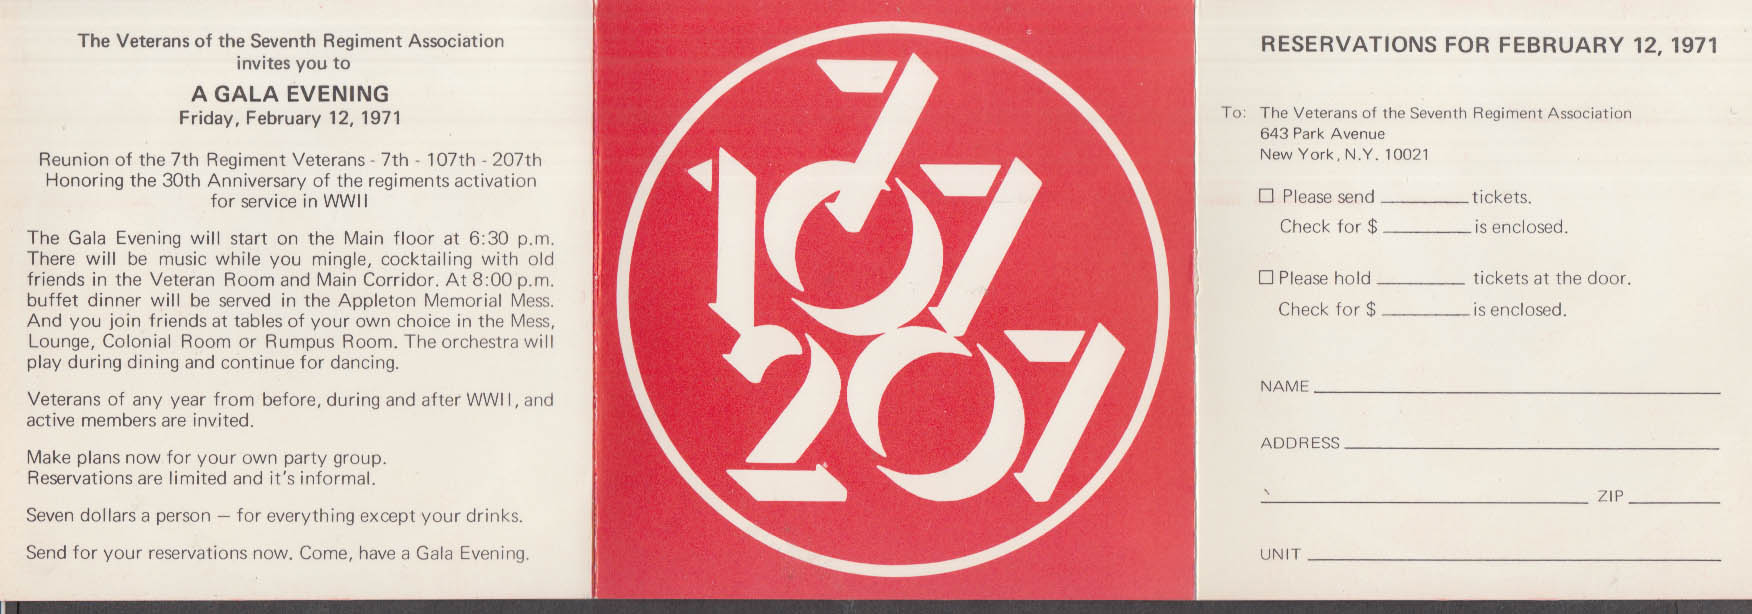 7th Regiment Veterans 30th Reunion Invitation folder 1971 107th 207th